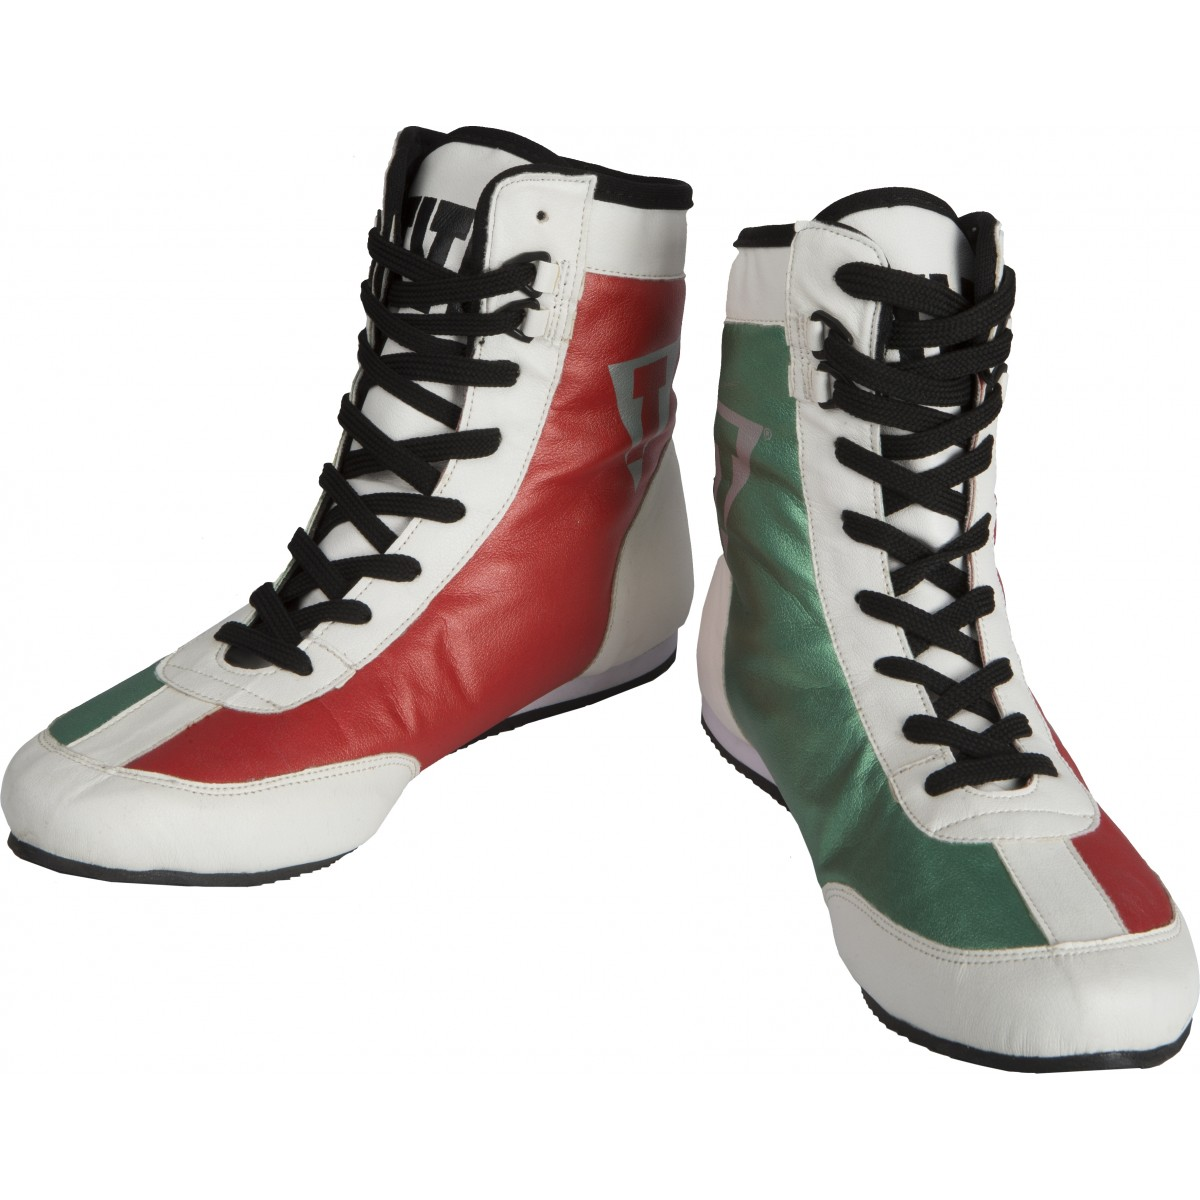 Best Shoes For Title Boxing